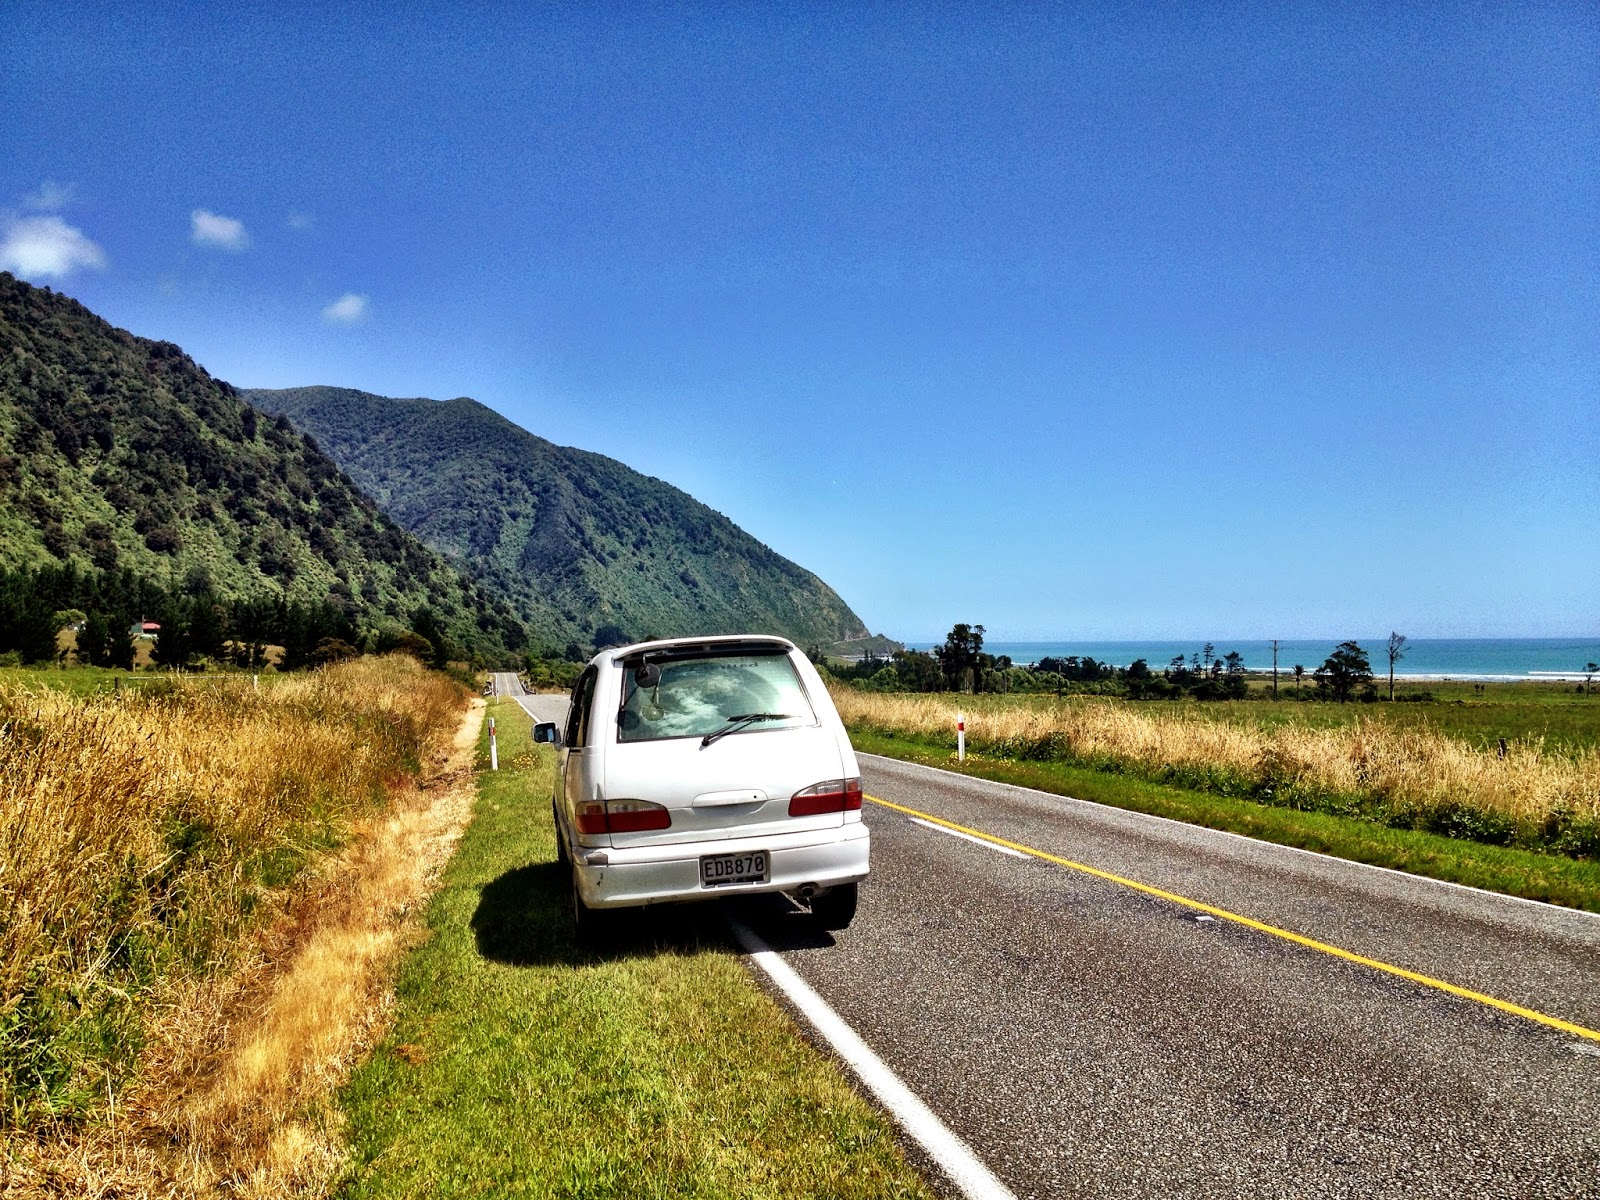 My first campervan in New Zealand - taken on the West Coast, South Island